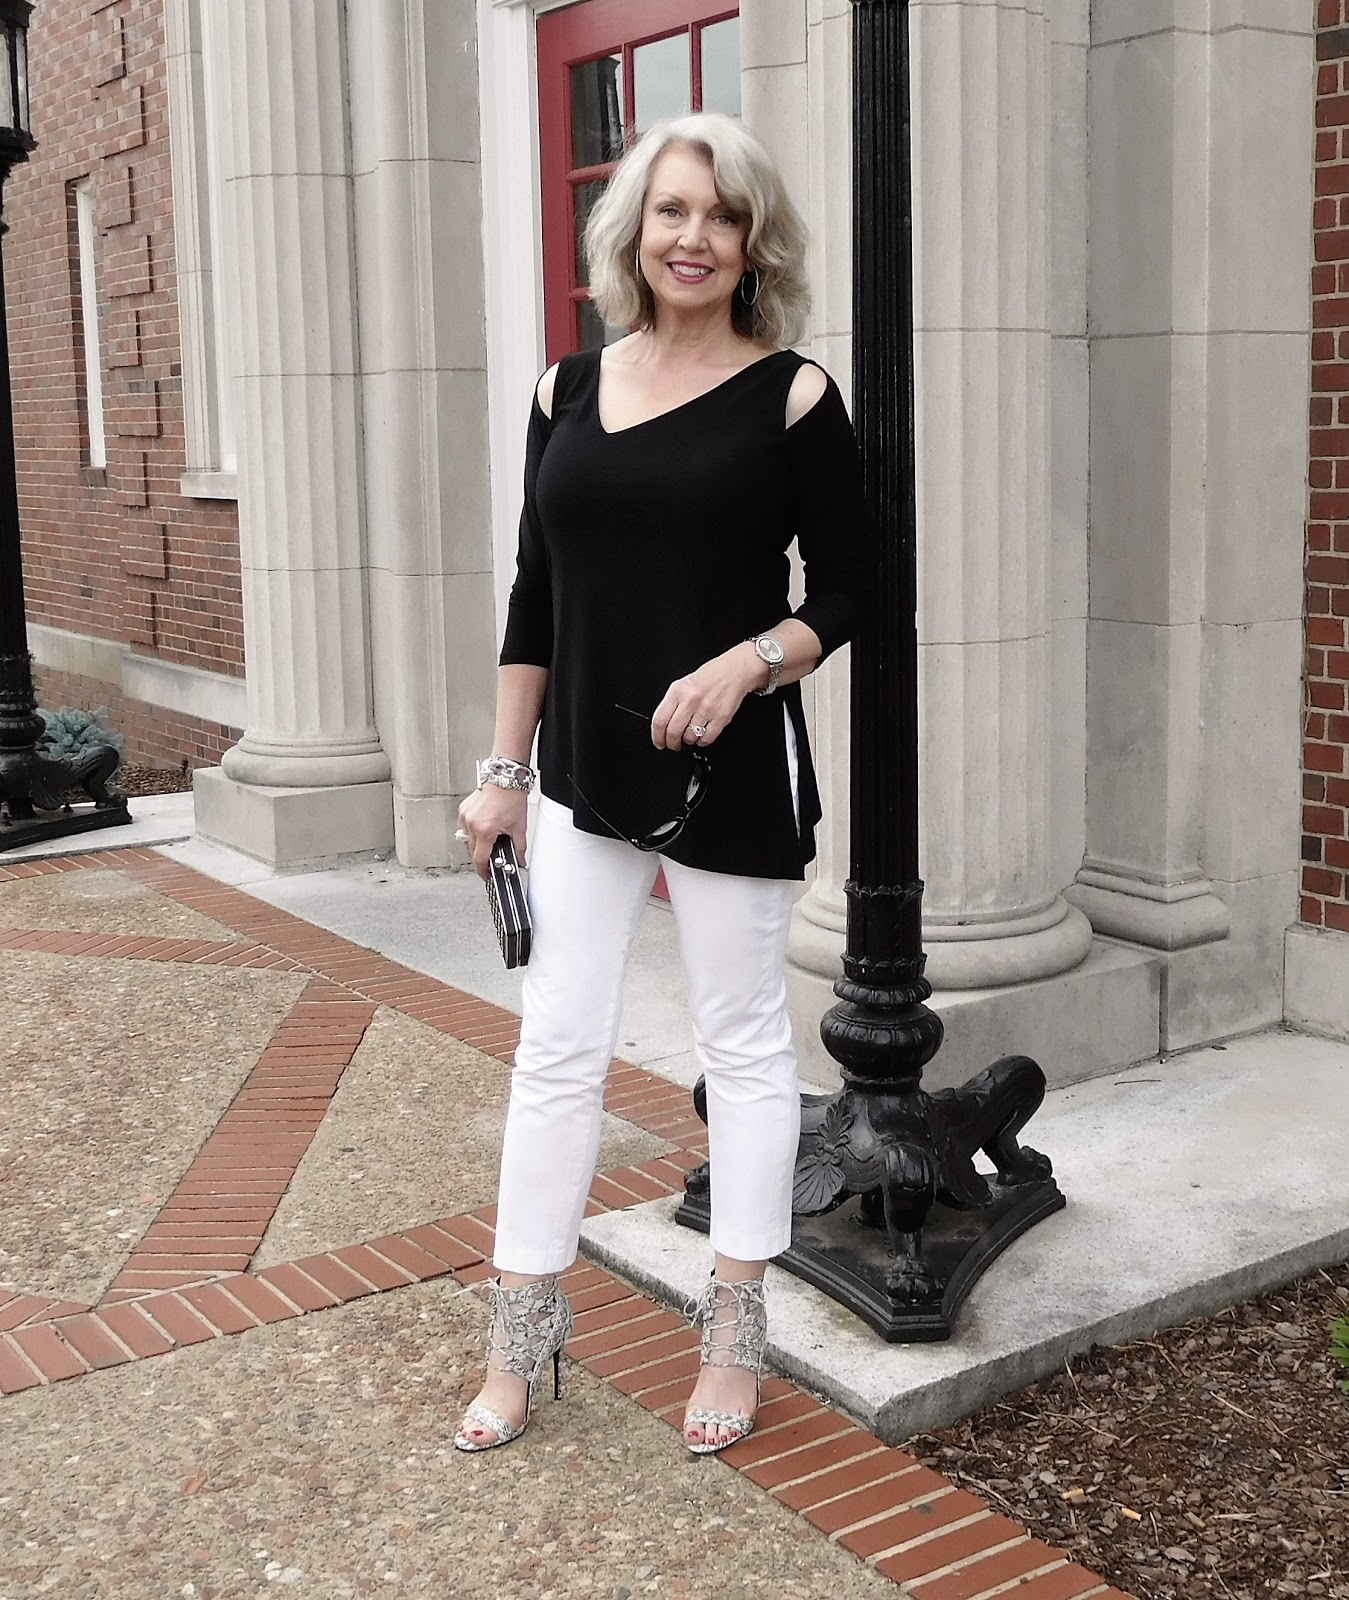 Casual Fashion For Over 60 - Fifty not frumpy